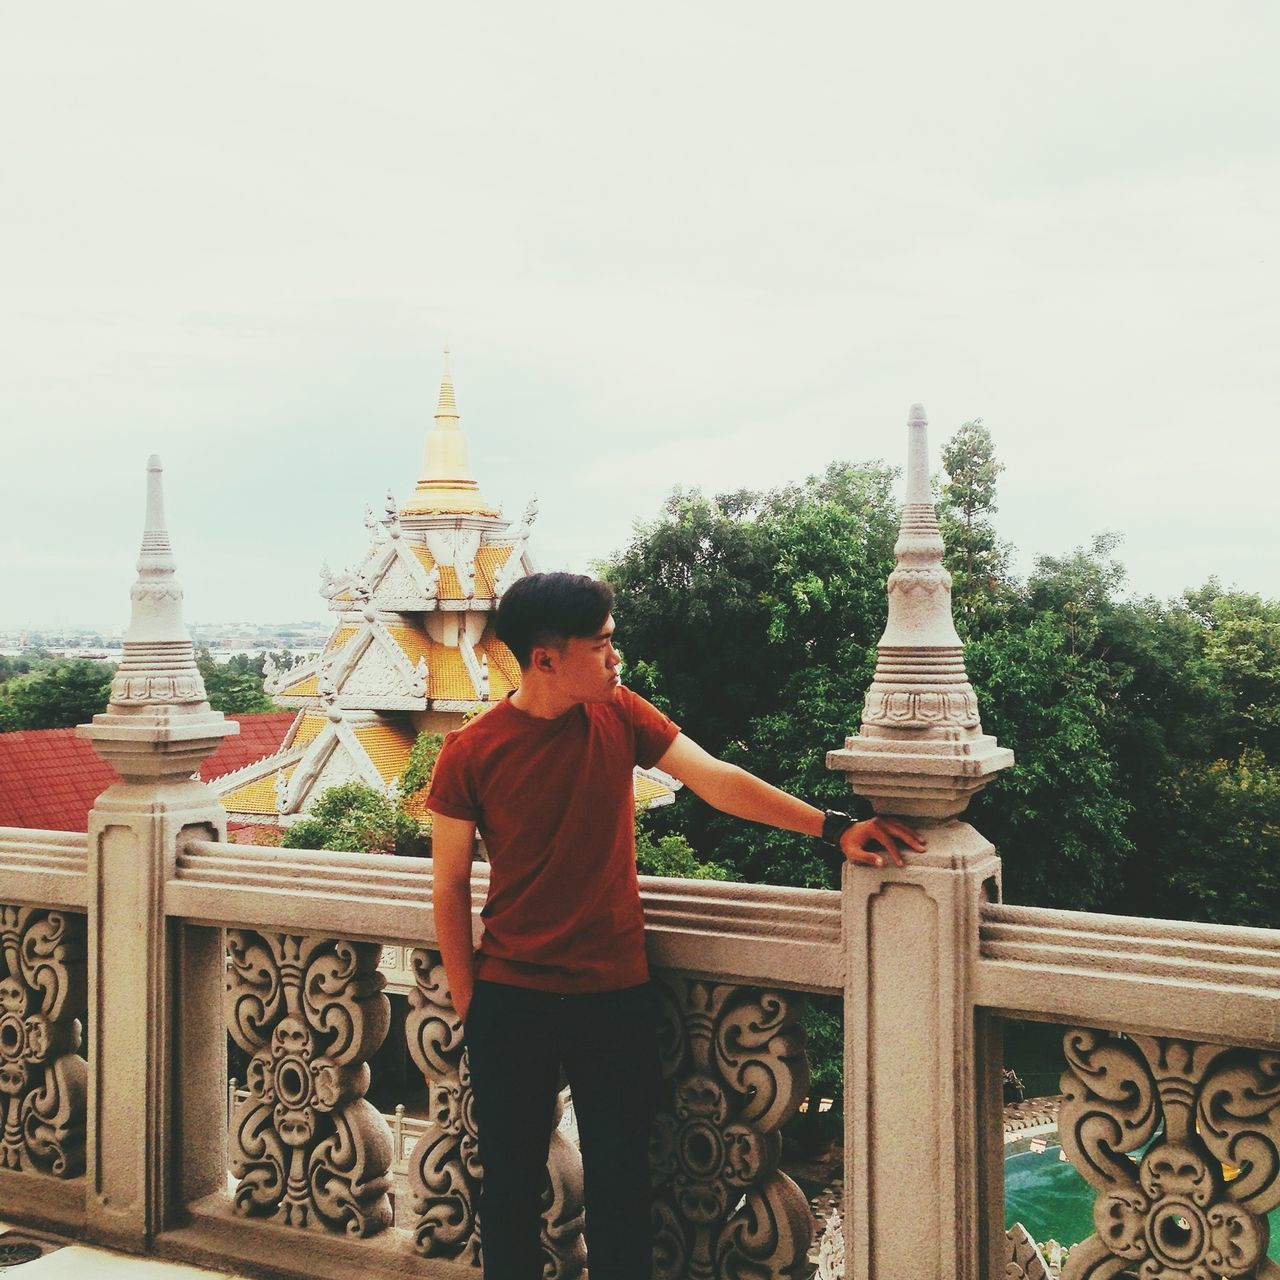 religion, real people, place of worship, spirituality, architecture, built structure, pagoda, building exterior, one person, travel destinations, lifestyles, rear view, sky, leisure activity, history, ancient, travel, tourism, tree, outdoors, standing, day, men, young adult